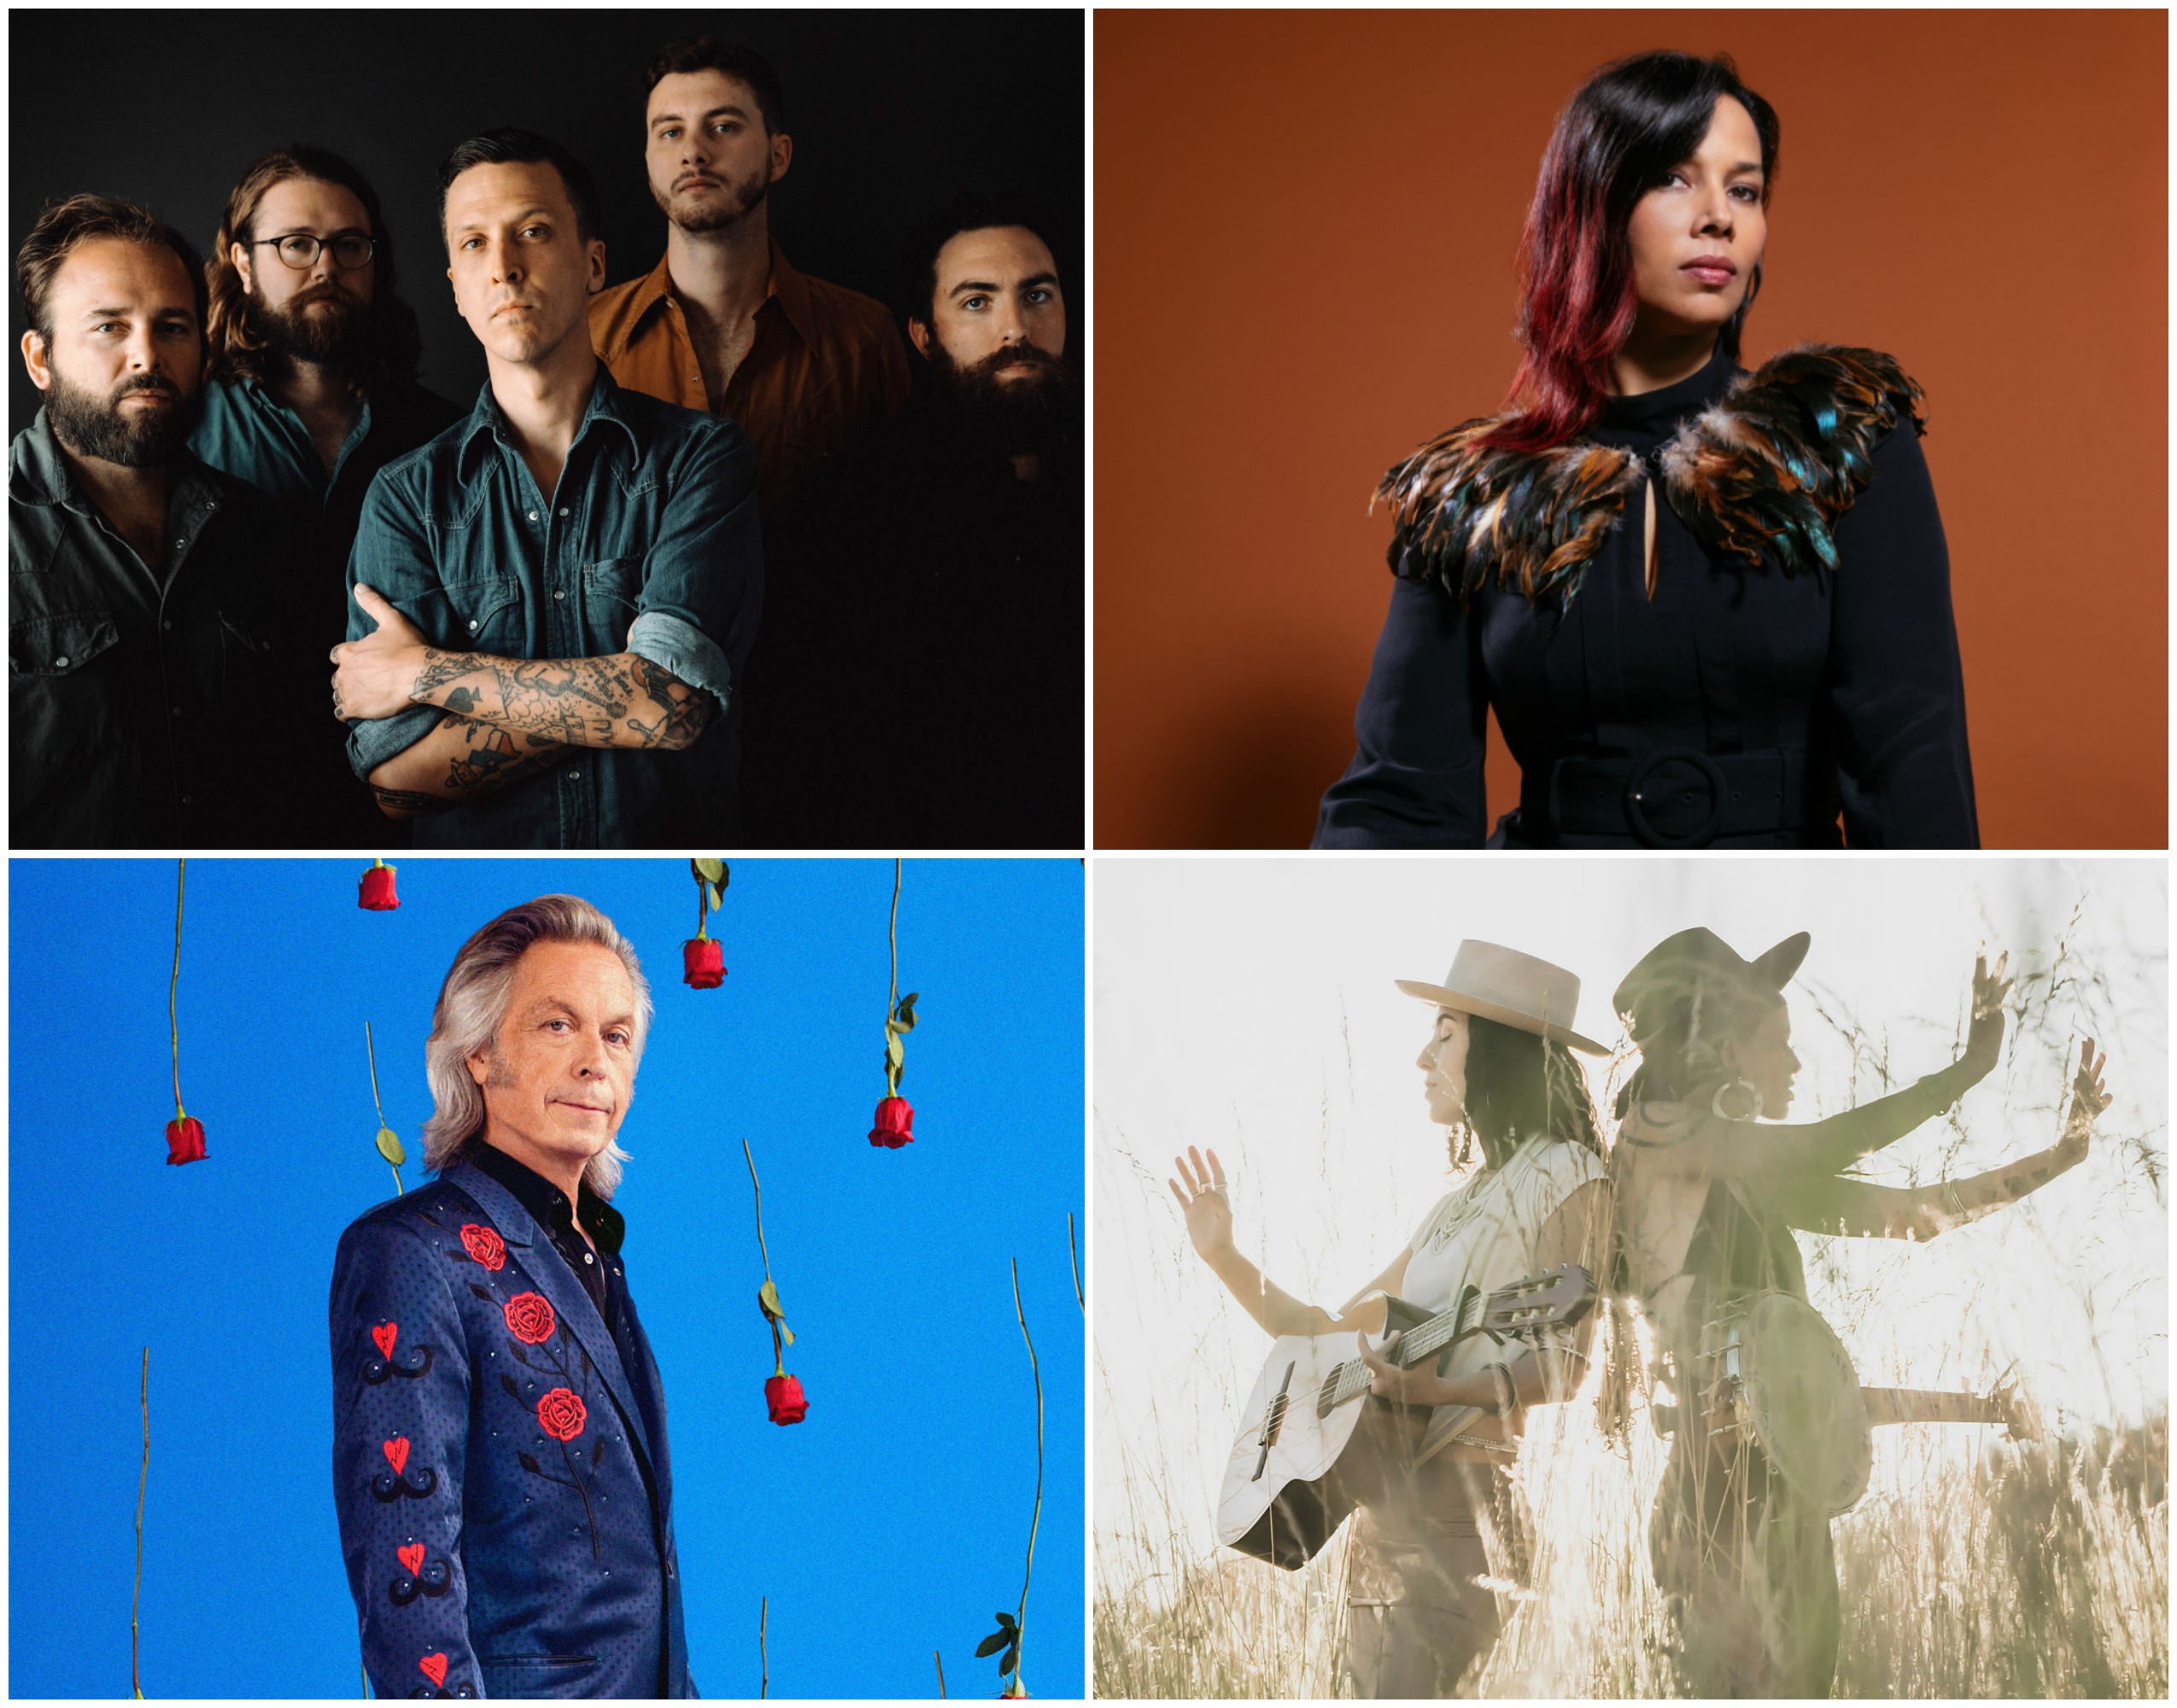 Clockwise from top left: American Aquarium, Rhiannon Giddens, Rising Appalachia, Jim Lauderdale